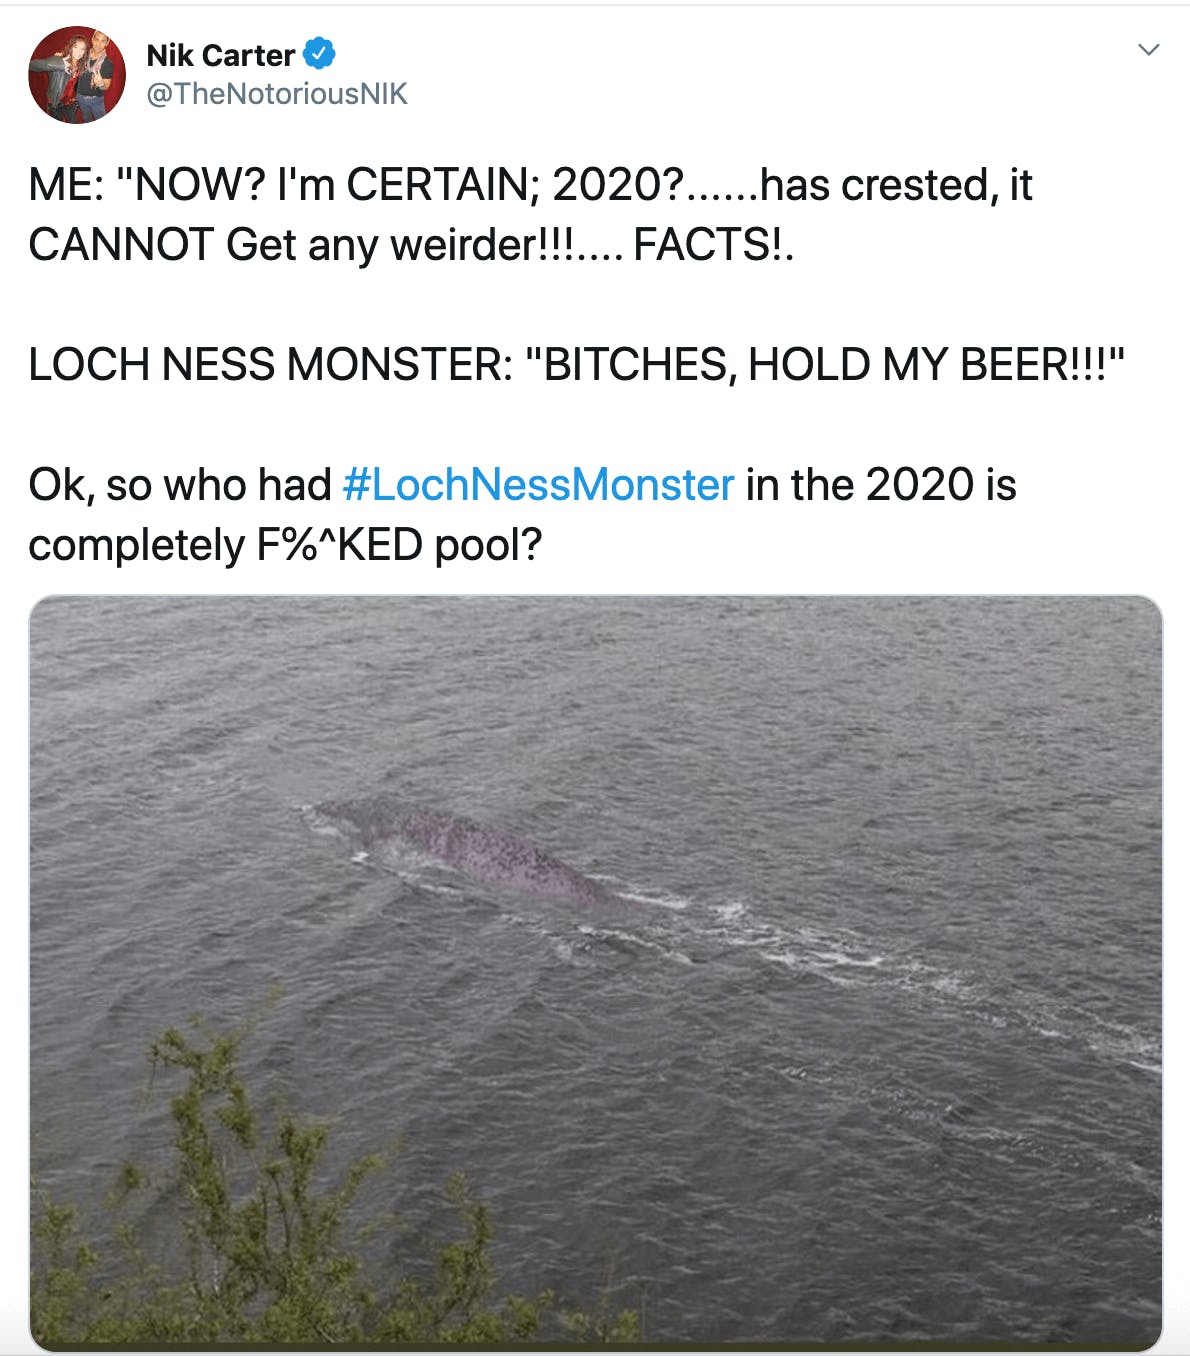 """ME: """"NOW? I'm CERTAIN; 2020?......has crested, it CANNOT Get any weirder!!!.... FACTS!.  LOCH NESS MONSTER: """"BITCHES, HOLD MY BEER!!!""""  Ok, so who had #LochNessMonster in the 2020 is completely F%^KED pool?"""